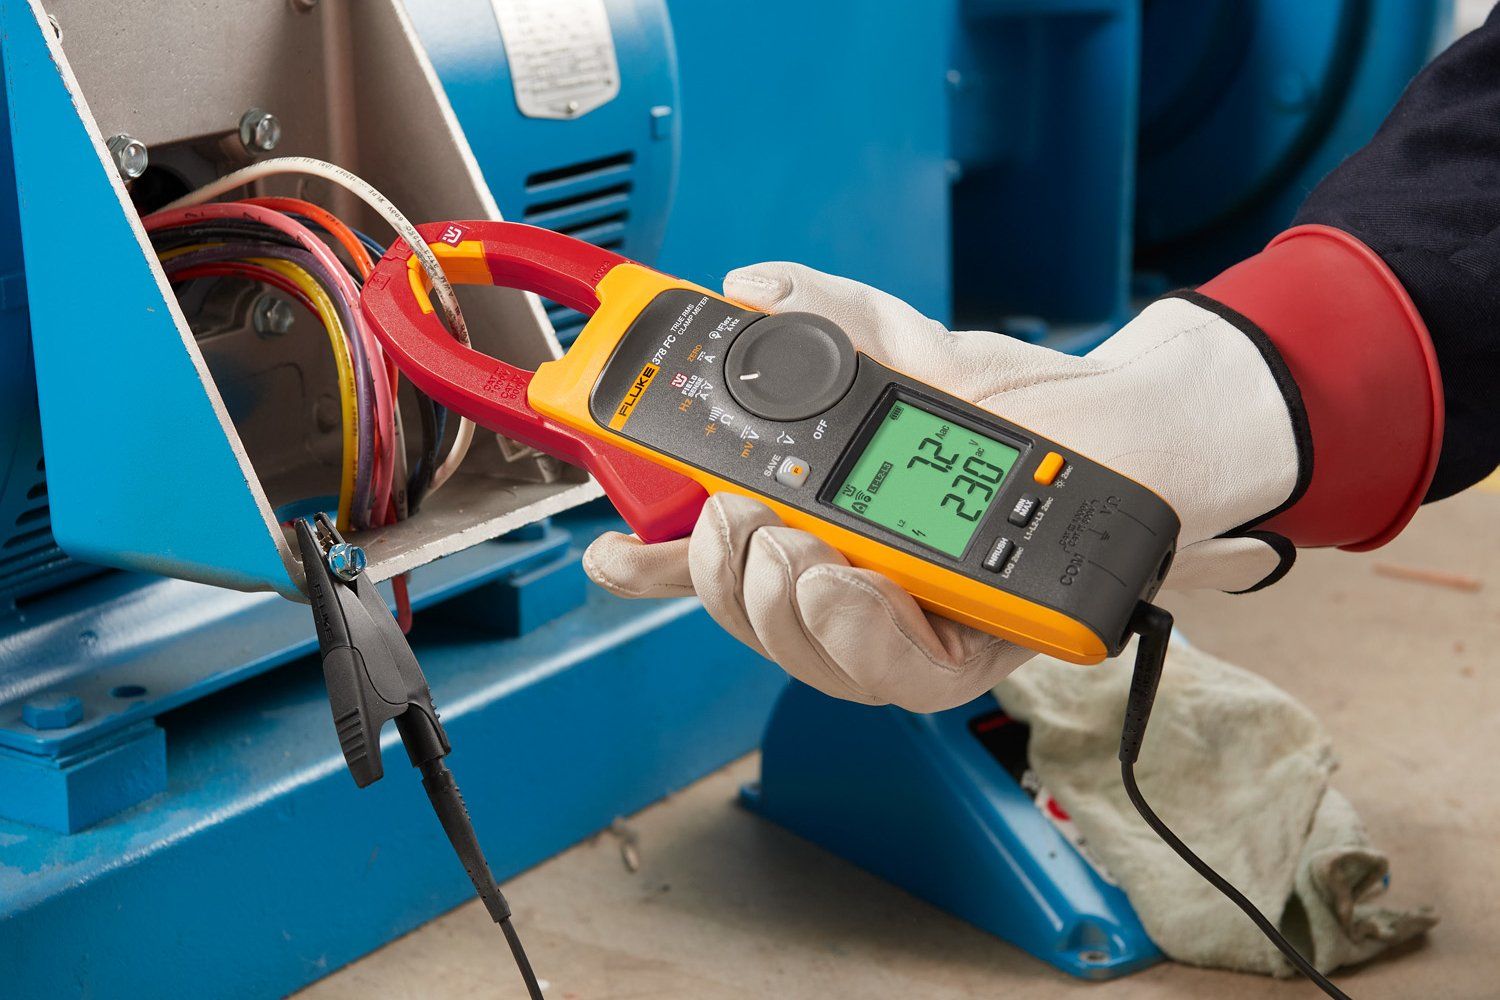 The Fluke 378 FC Clamp Meter measuring Amps AC and Volts AC.